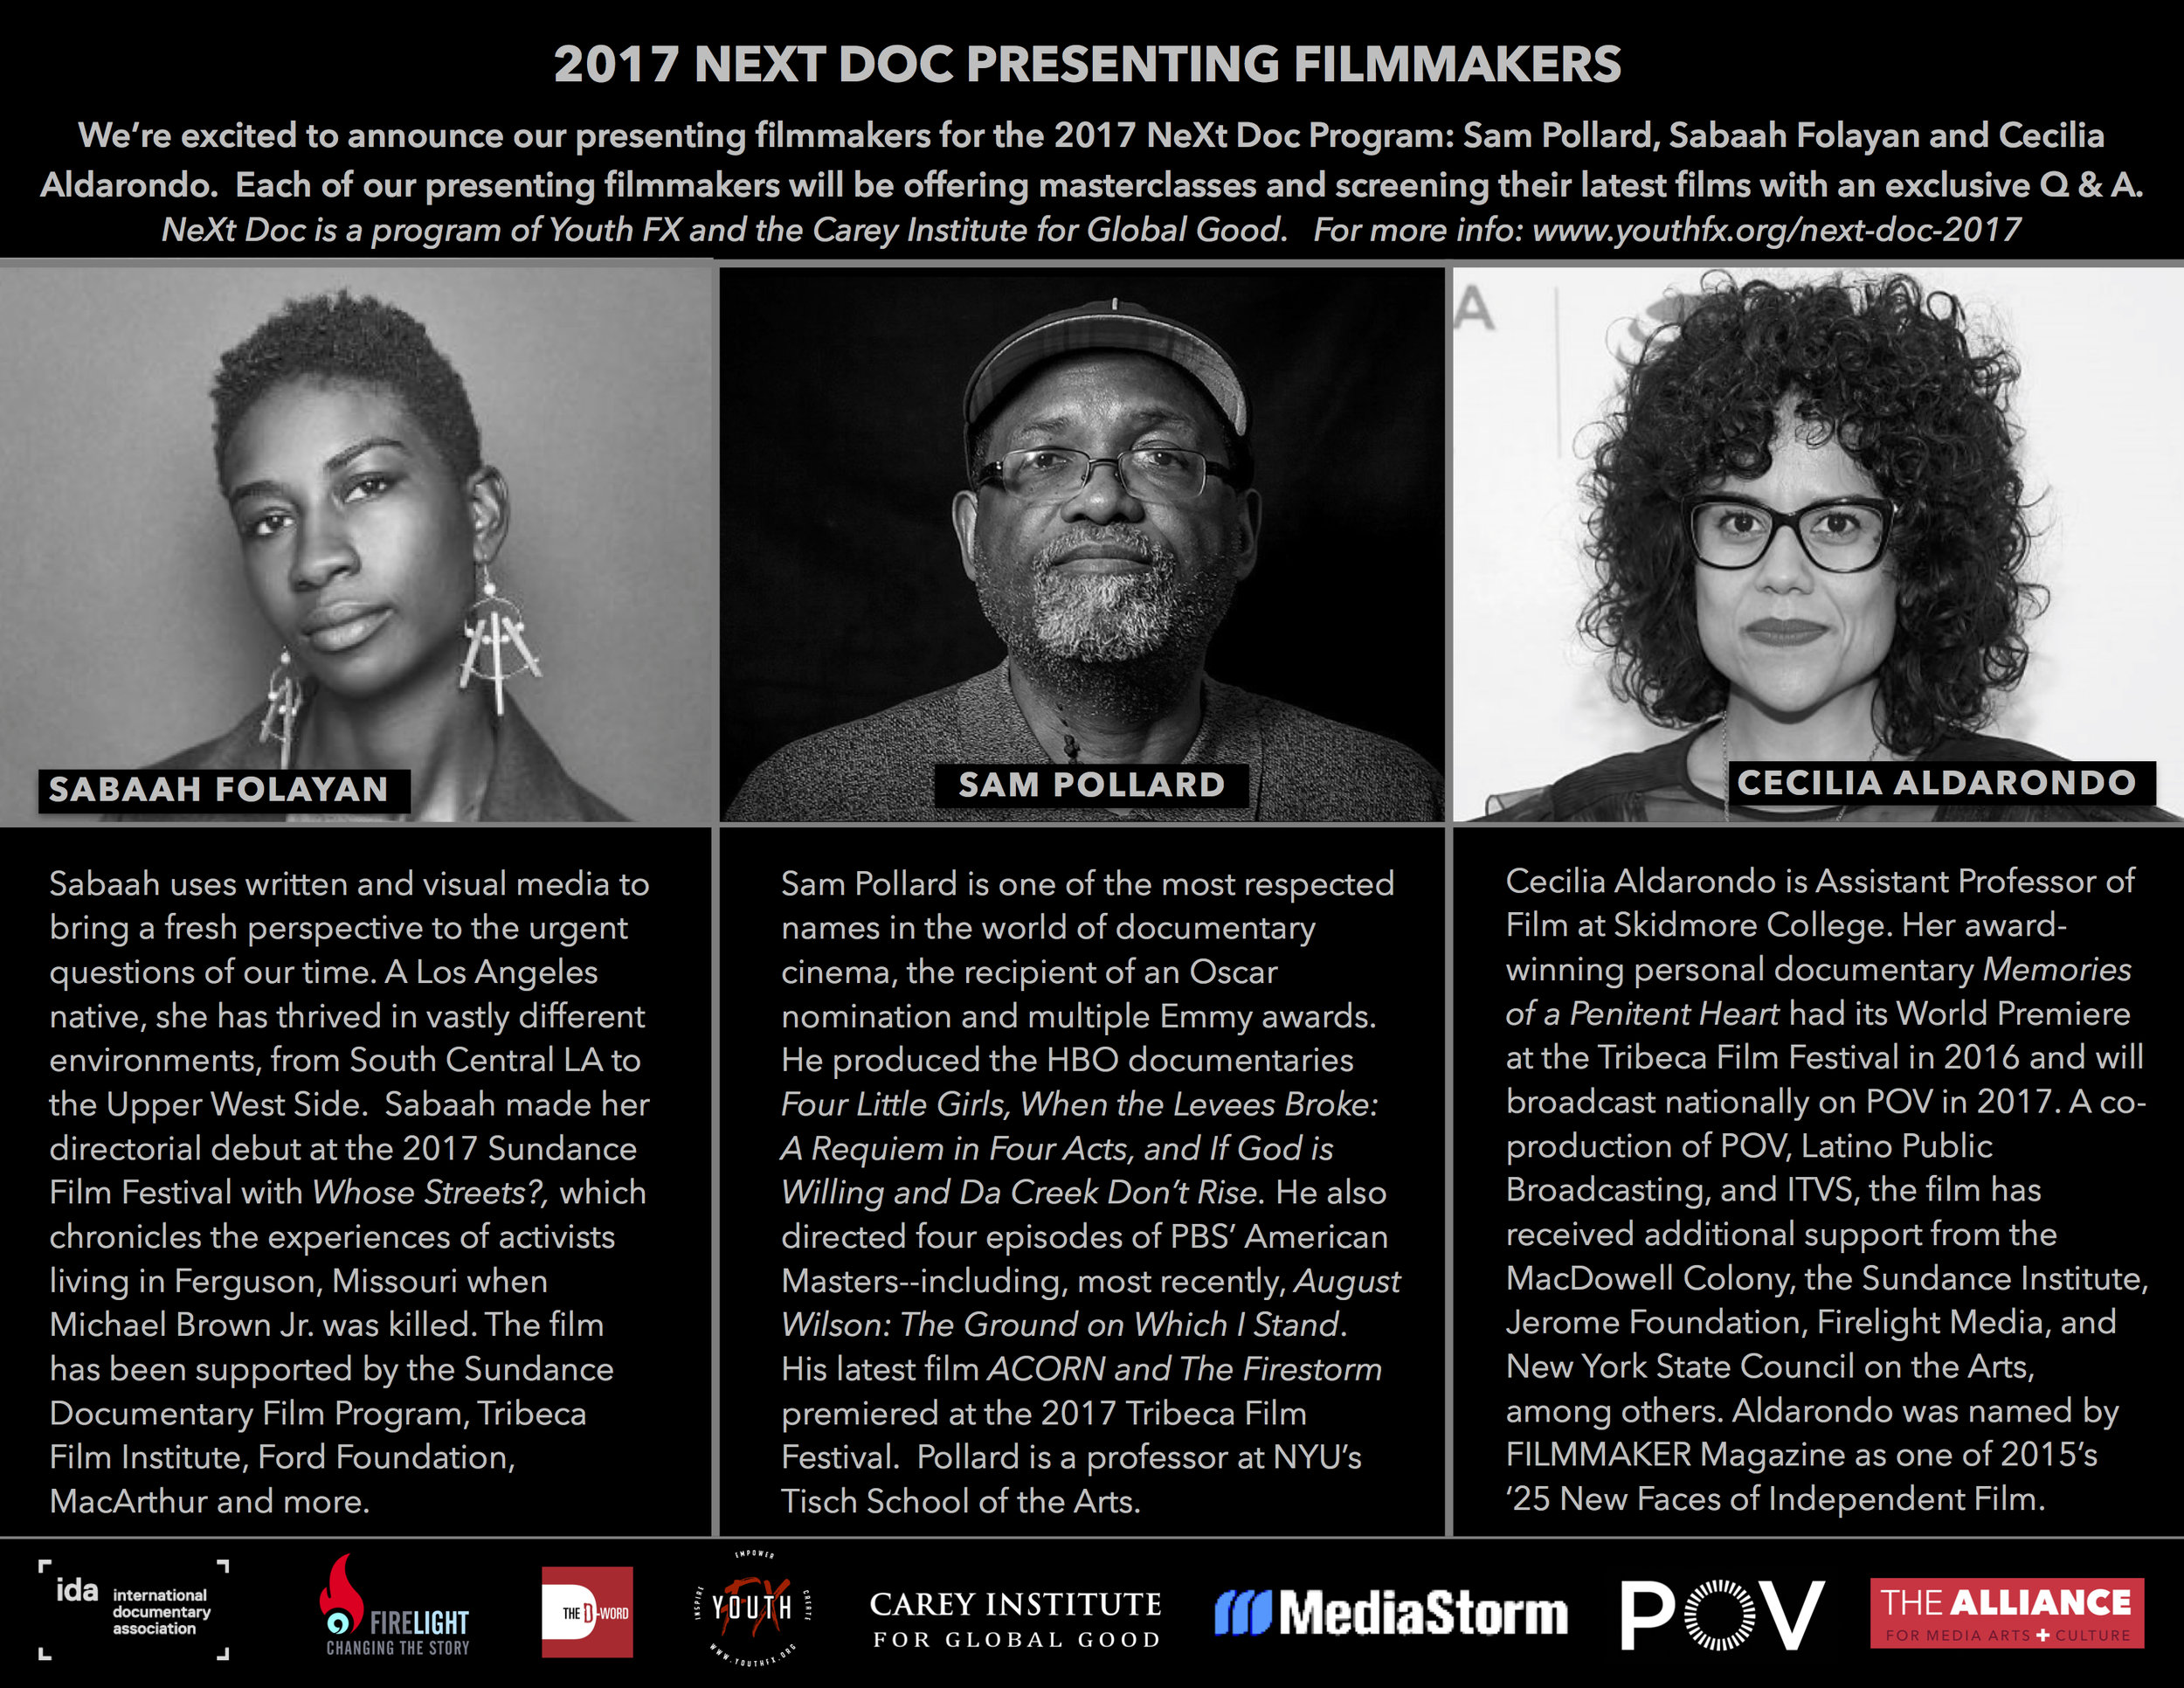 2017 Next Doc Presenting Filmmakers.jpg